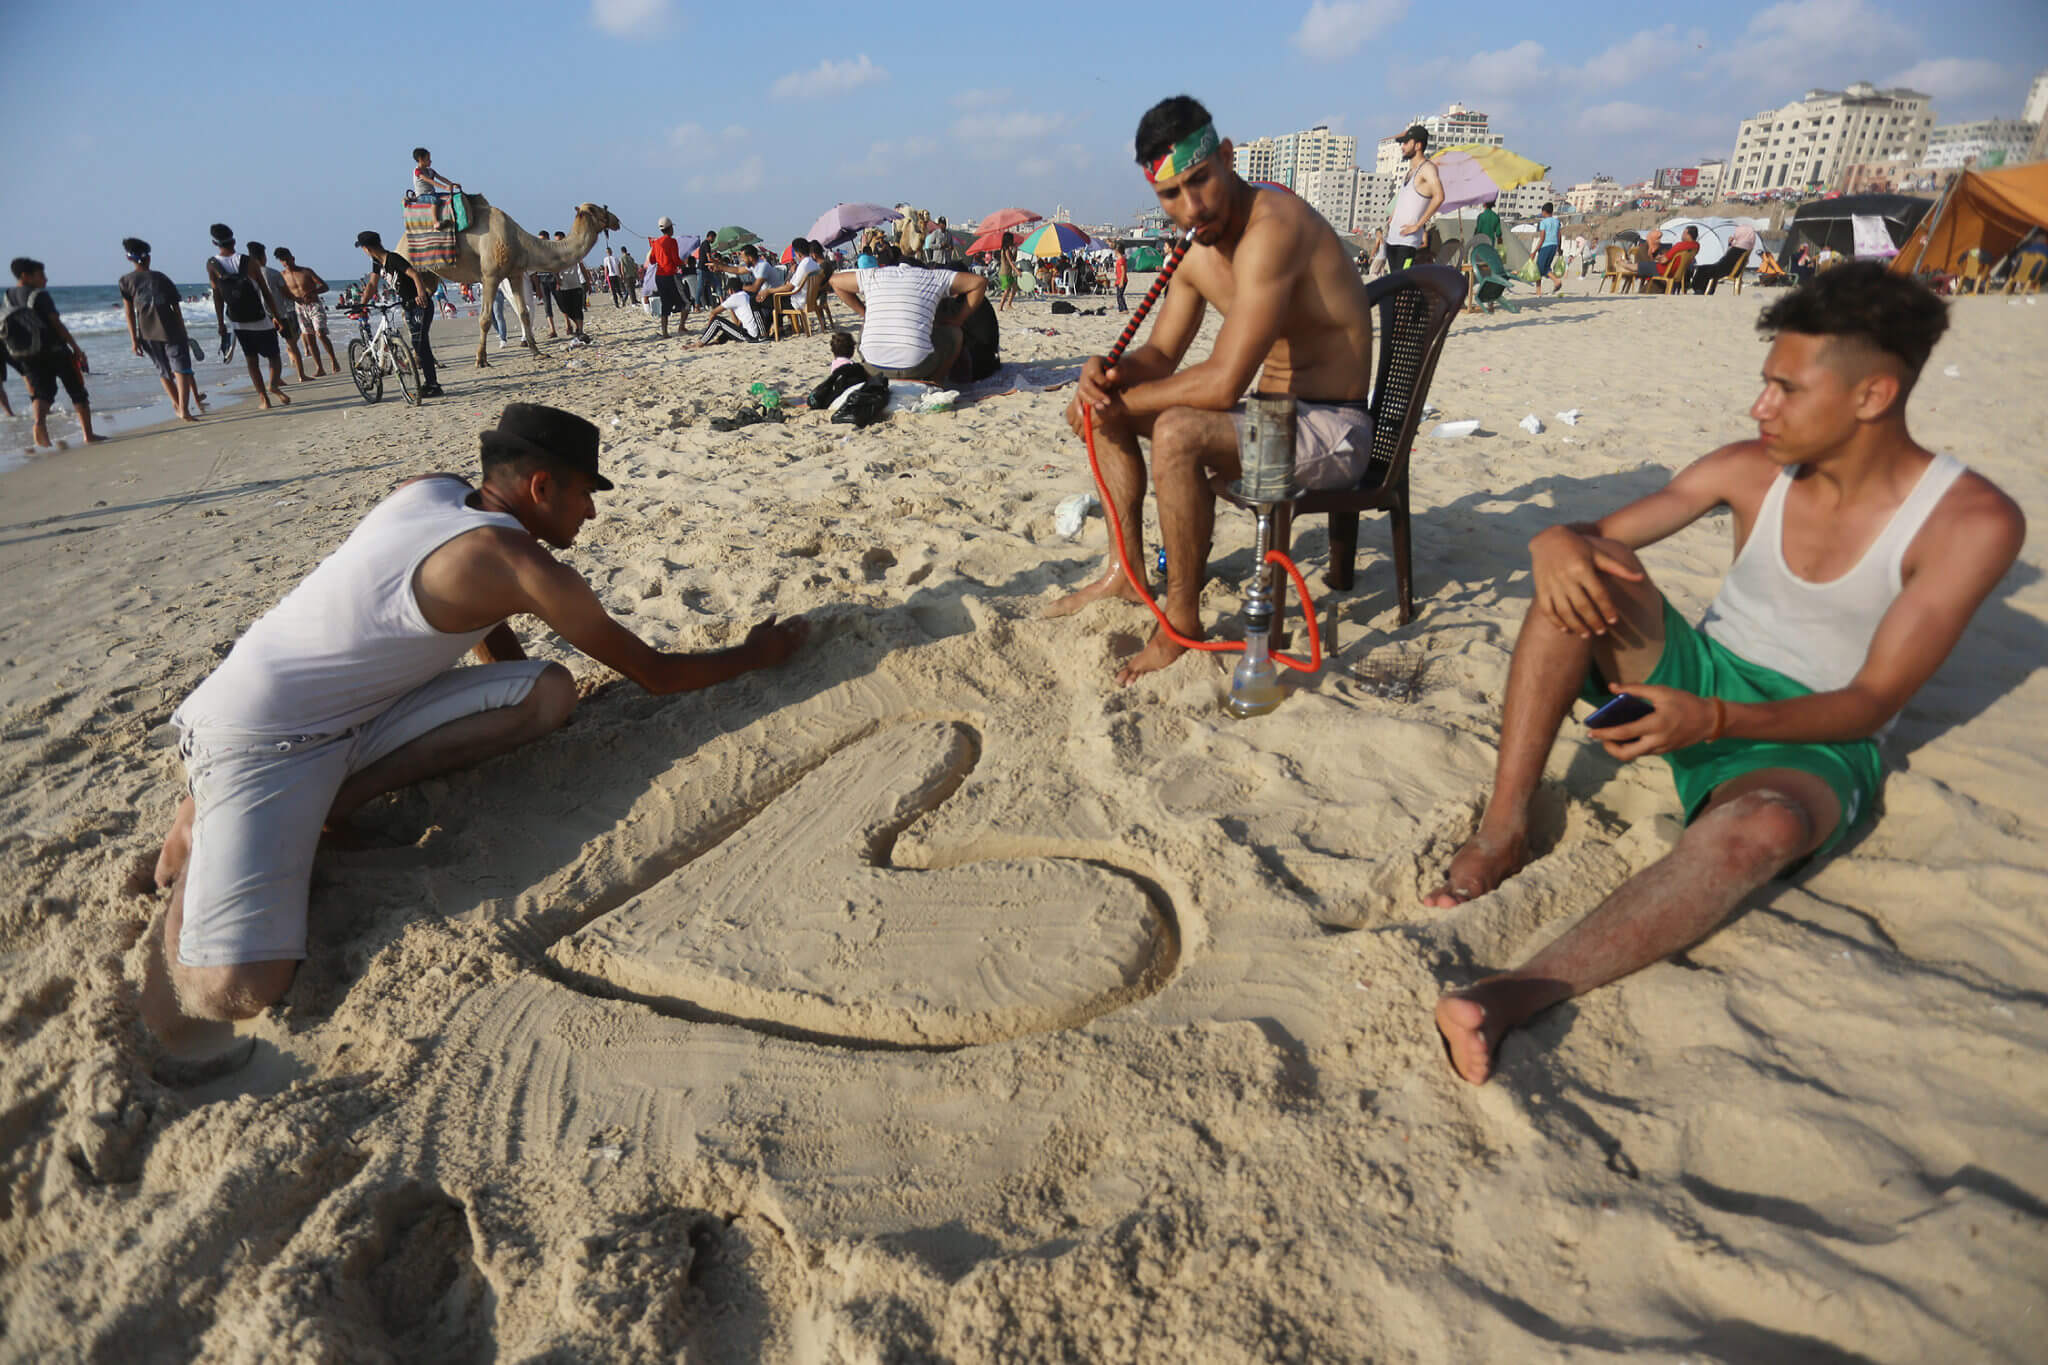 Beach goers enjoy their summer holiday after finishing the school year